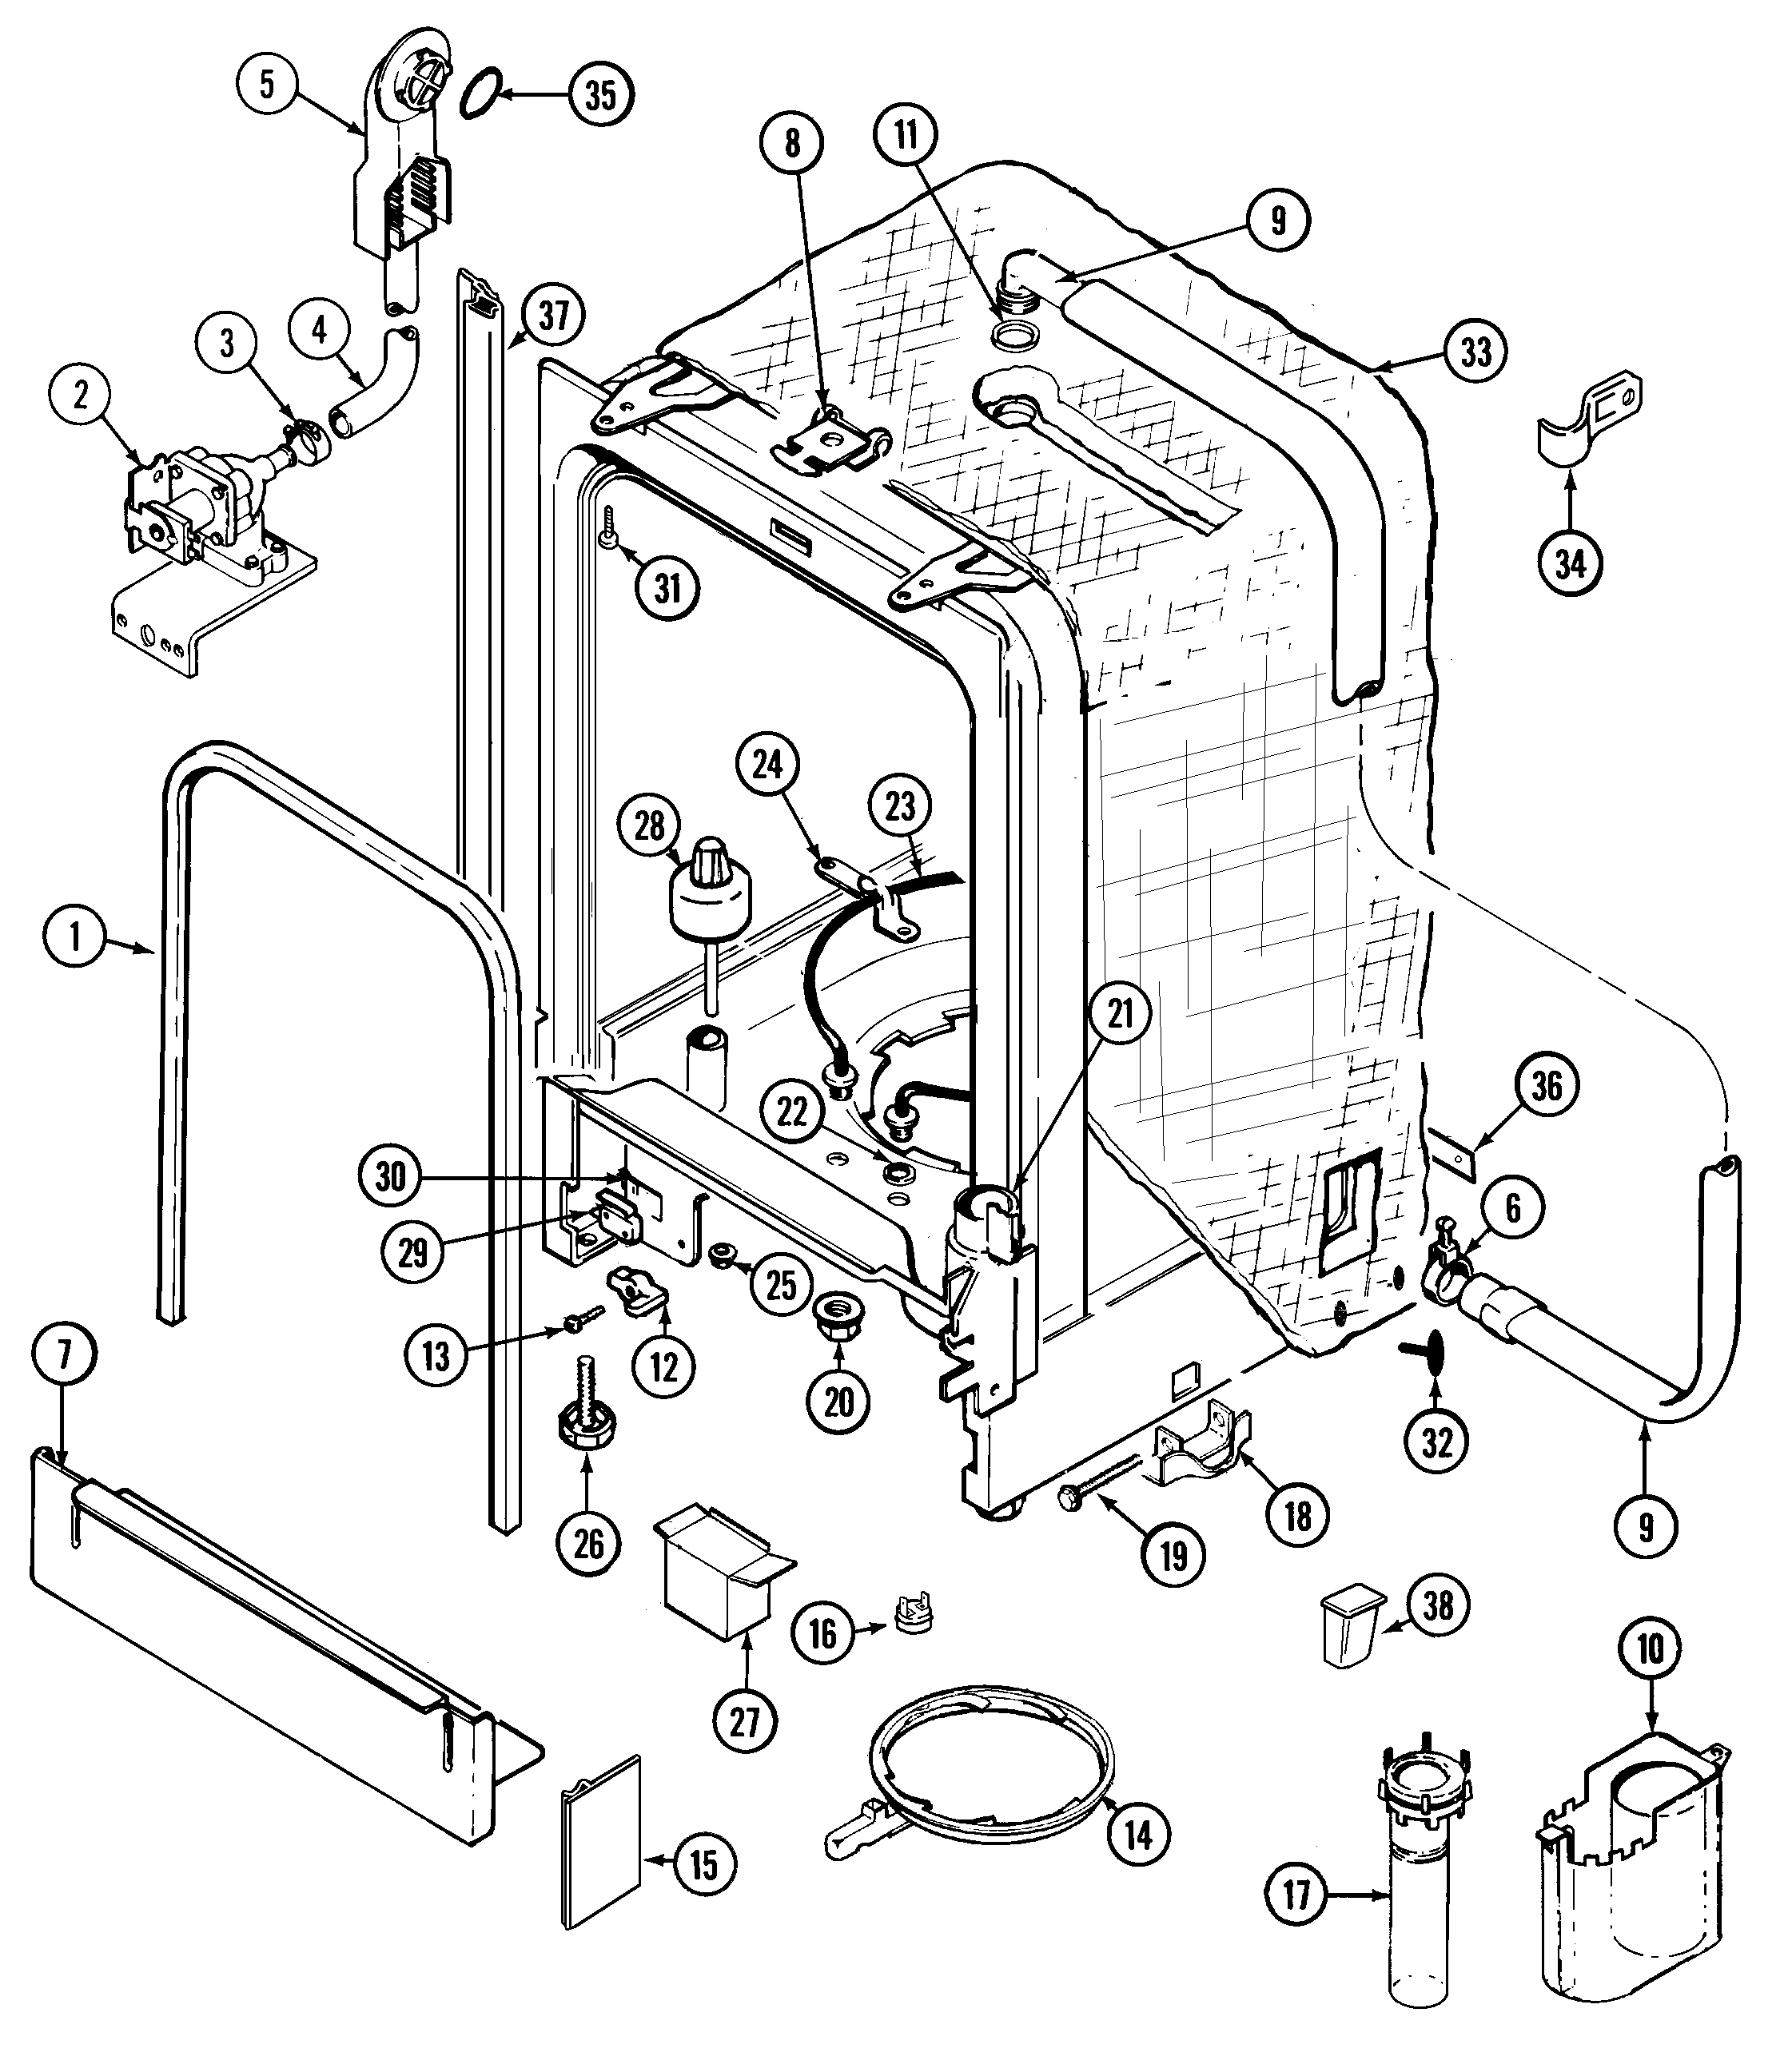 Whirlpool Drawing At Free For Personal Use Electric Range Wiring Diagram 2242x2593 Maytag Mdb6000awa Timer